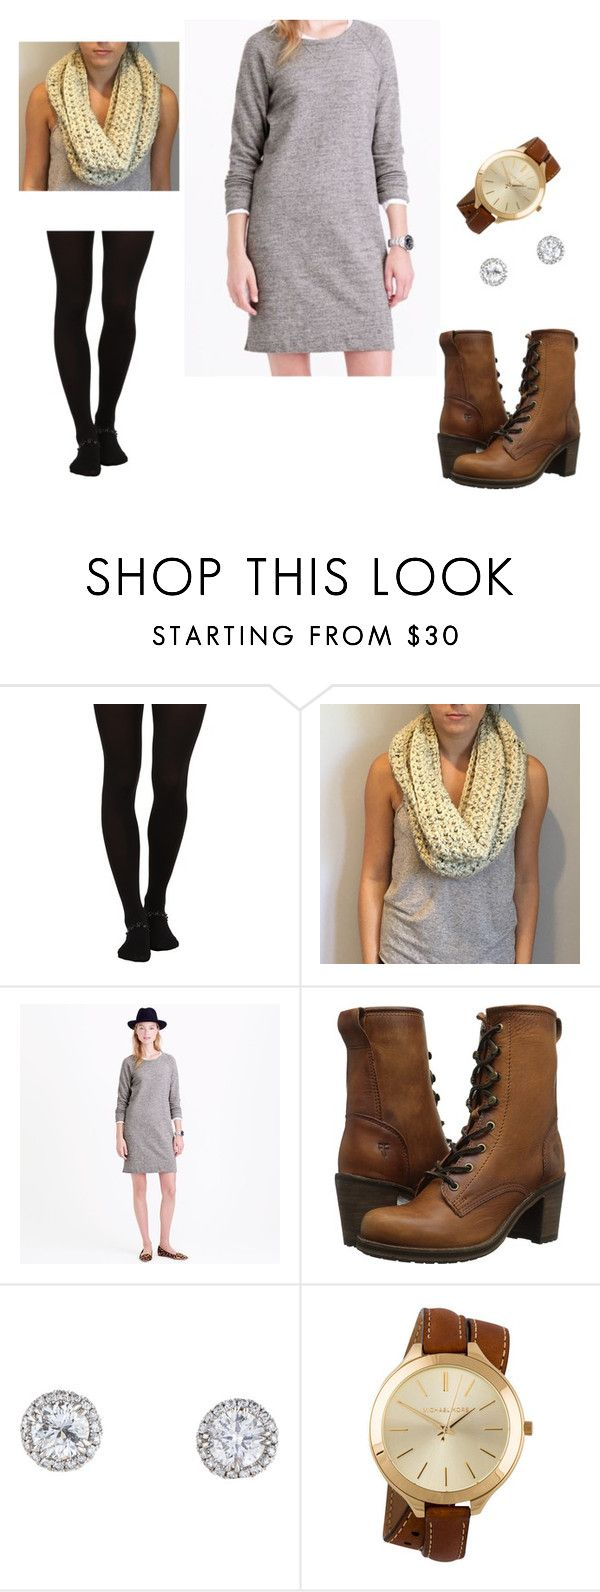 """Untitled #20"" by oliviaf14 on Polyvore featuring Wolford, Frye and Michael Kors"